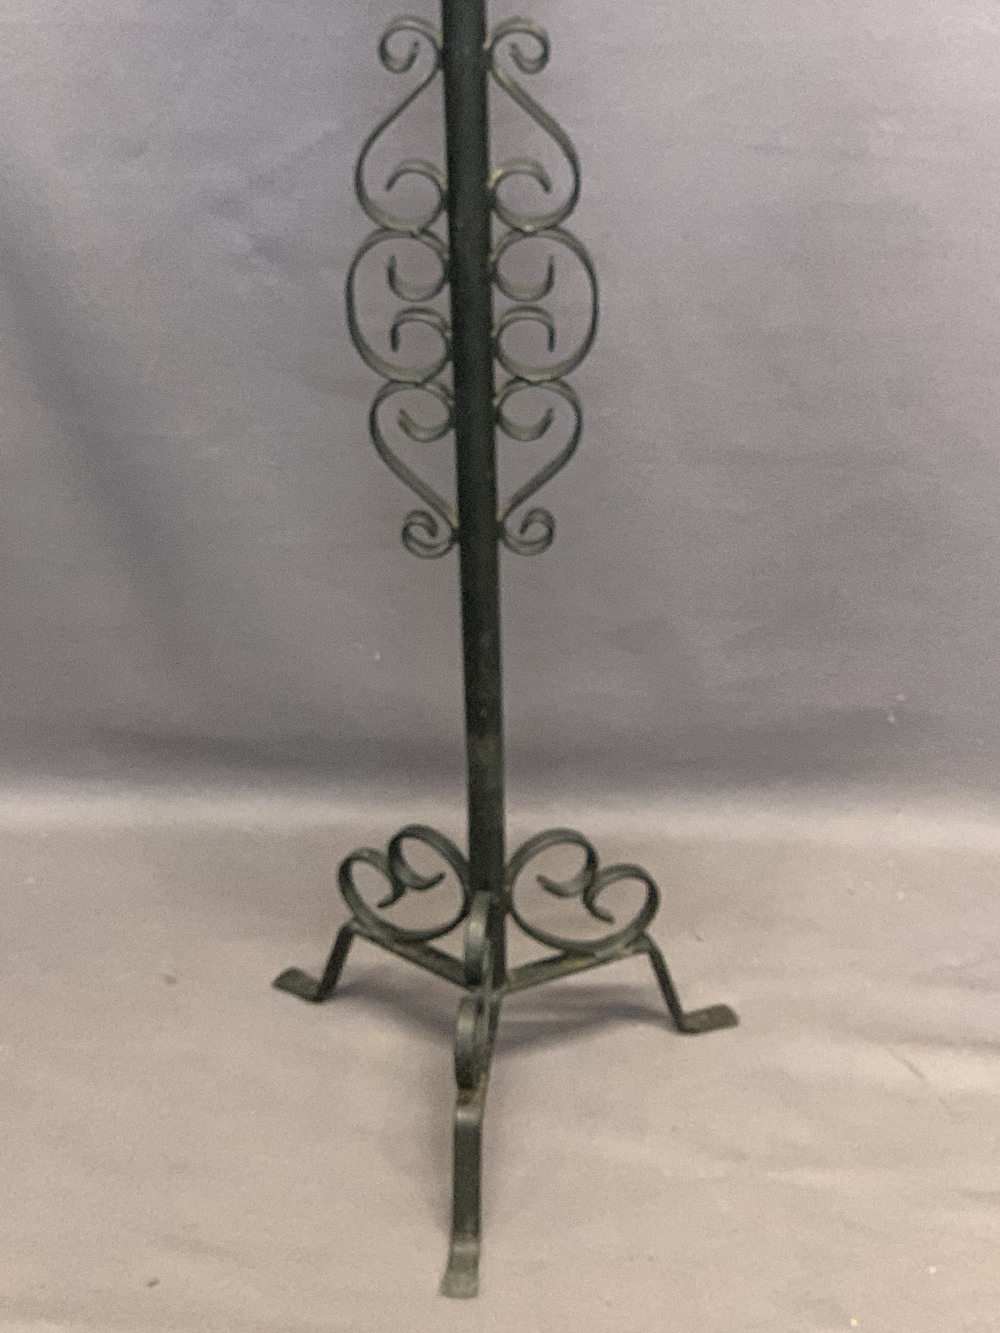 WROUGHT IRON LAMP/CANDLE STANDS (3) - 148, 124 and 74cm heights - Image 5 of 5